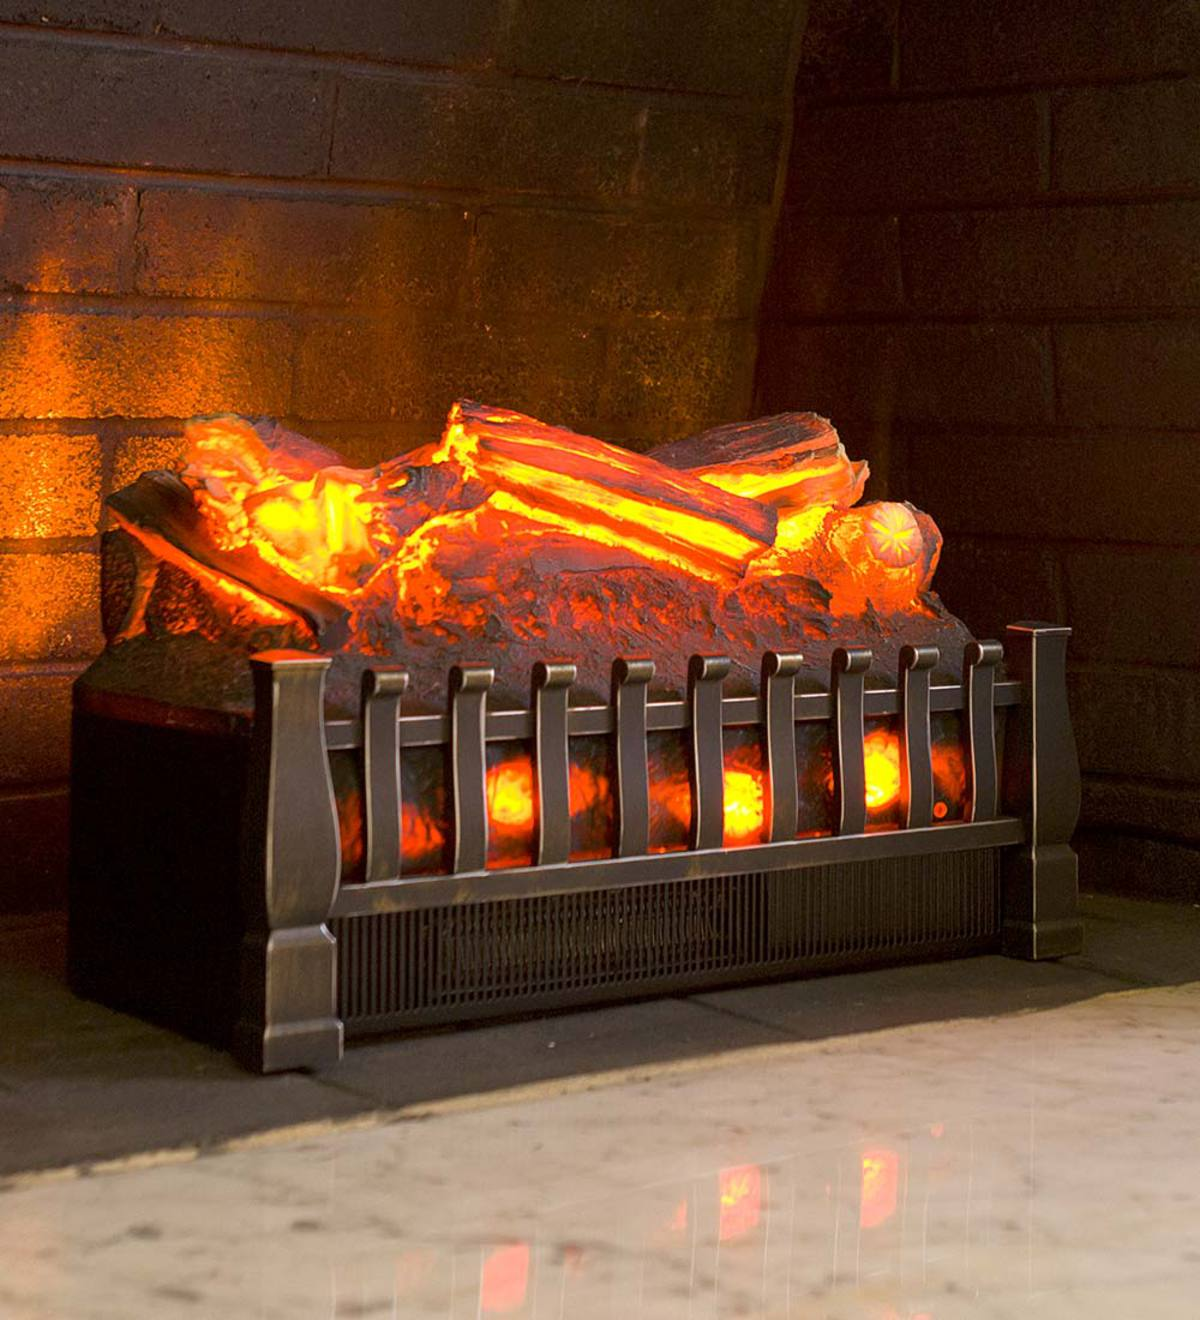 Electric Infrared Log Set with Oak Logs - Oak